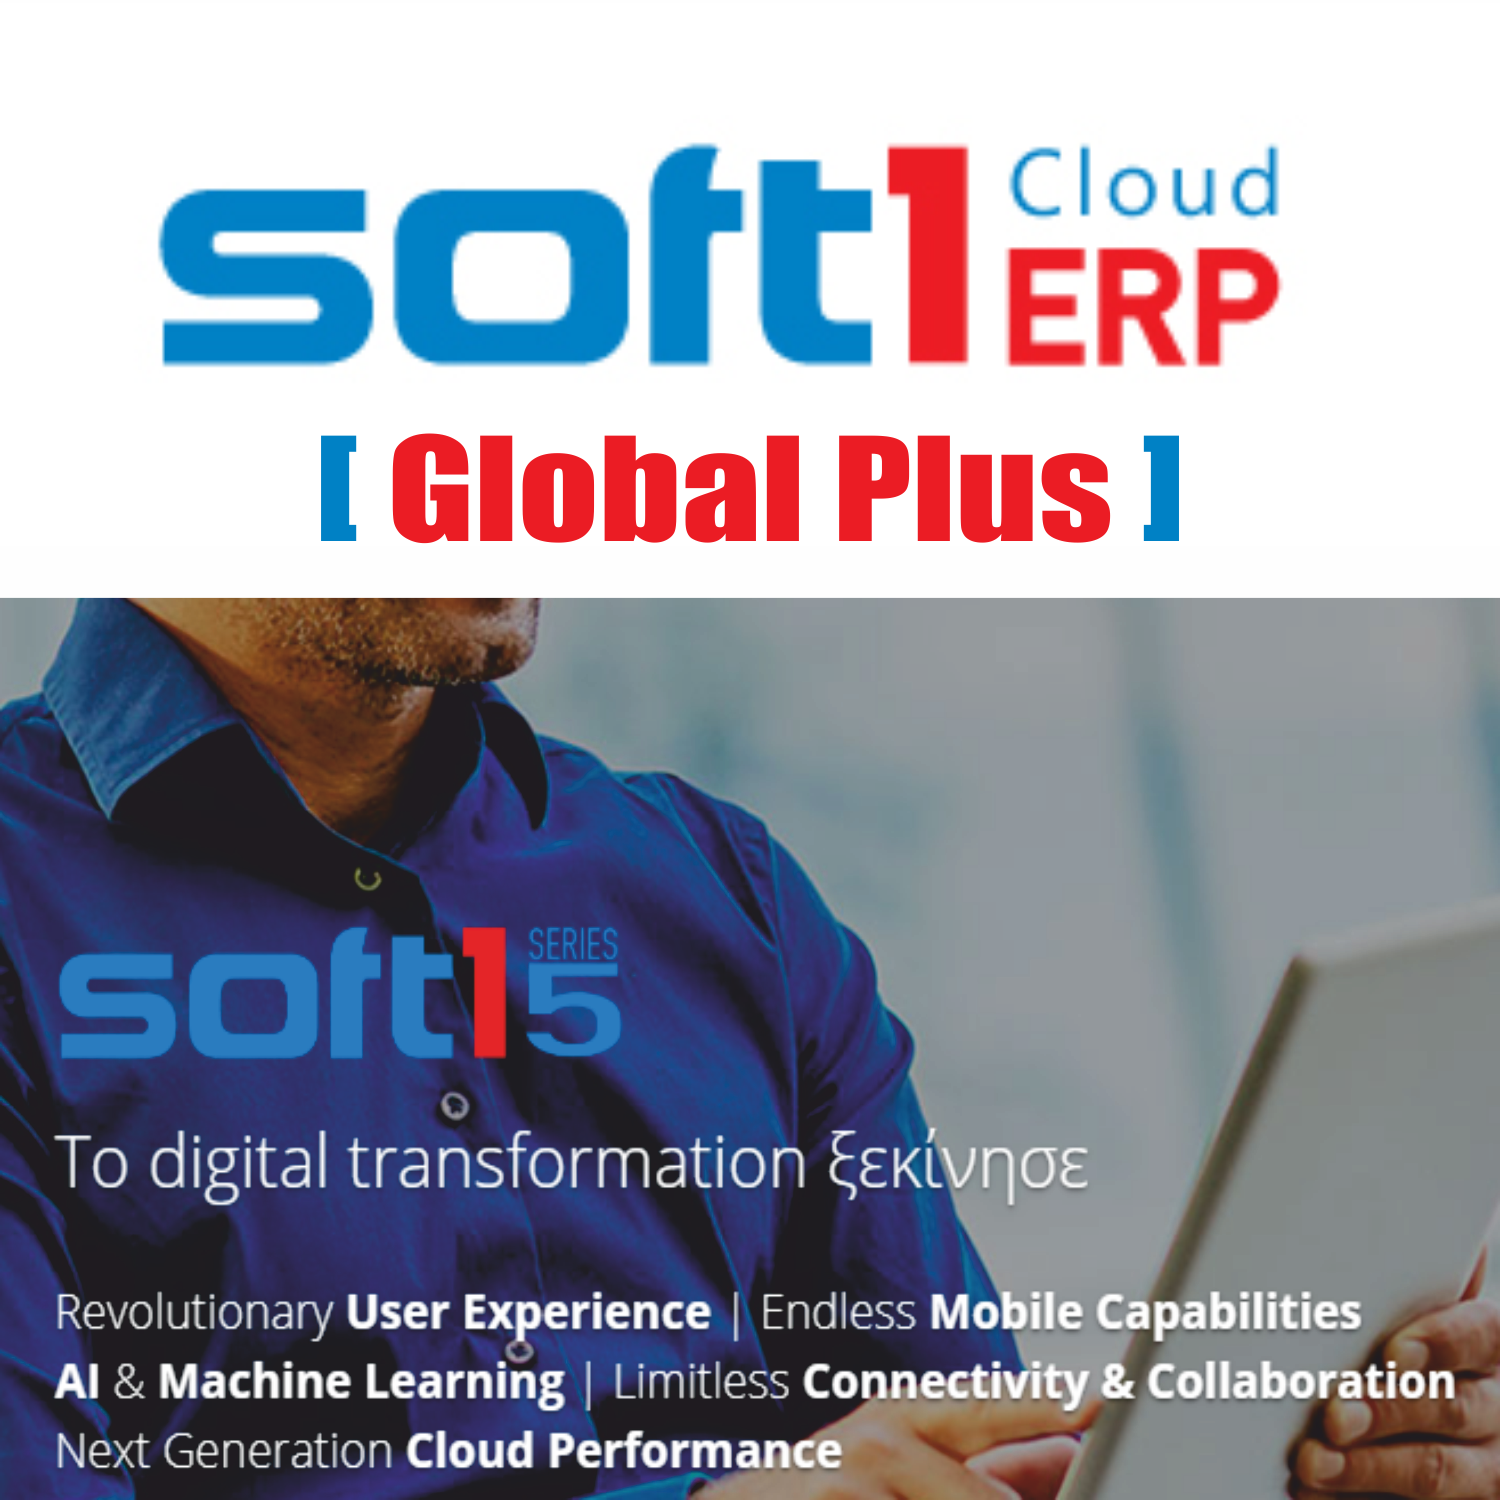 Soft1 OpEn Global Plus ERP